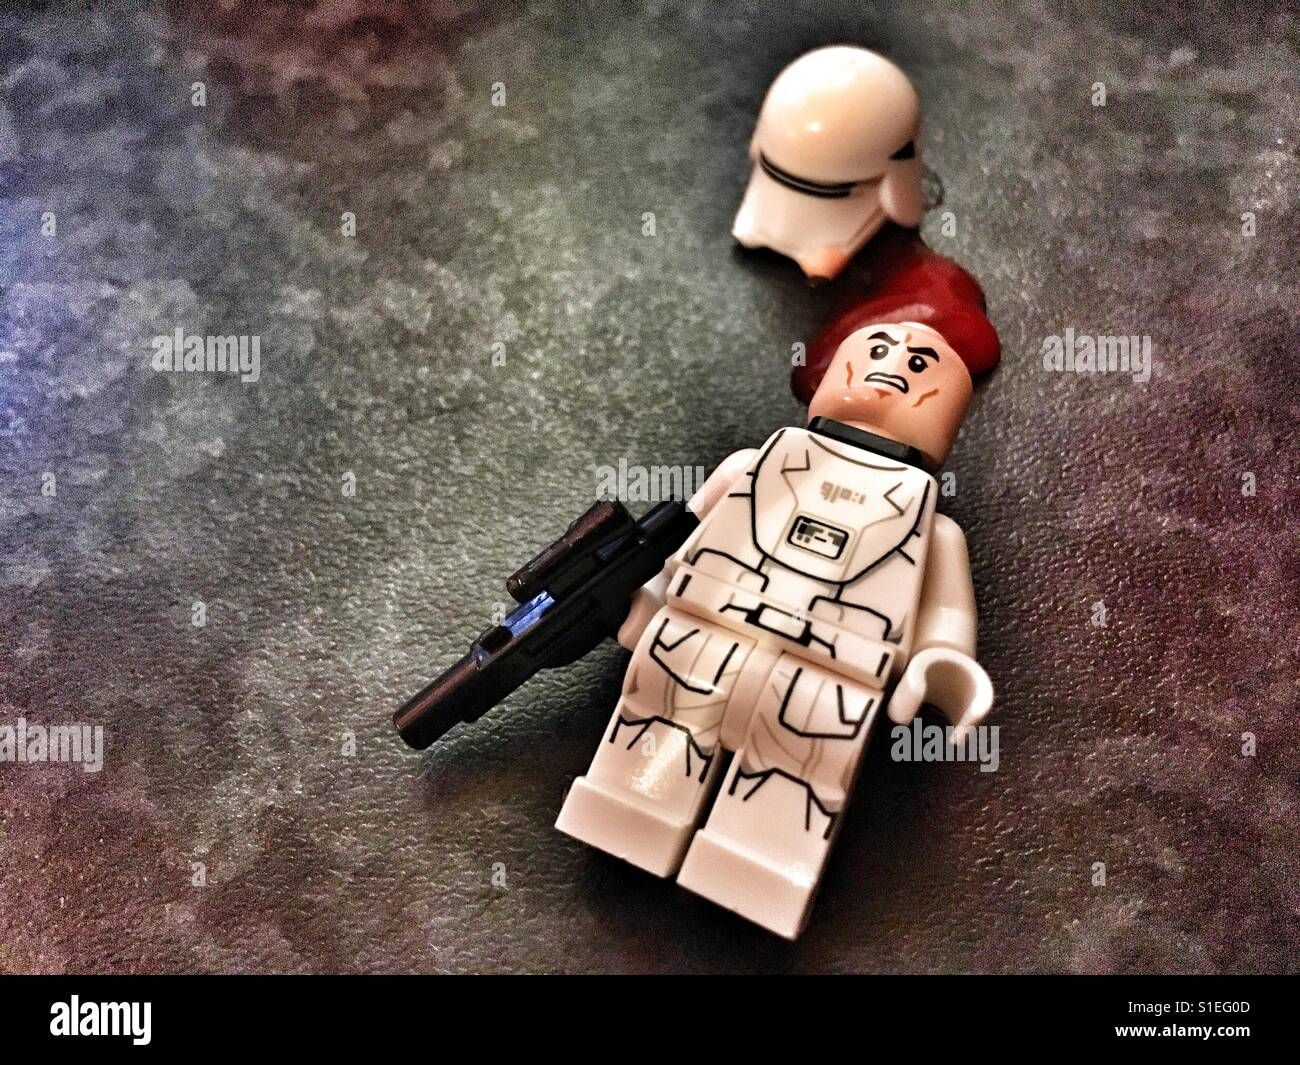 Wounded Lego First Order Snowtrooper mini figure - Stock Image